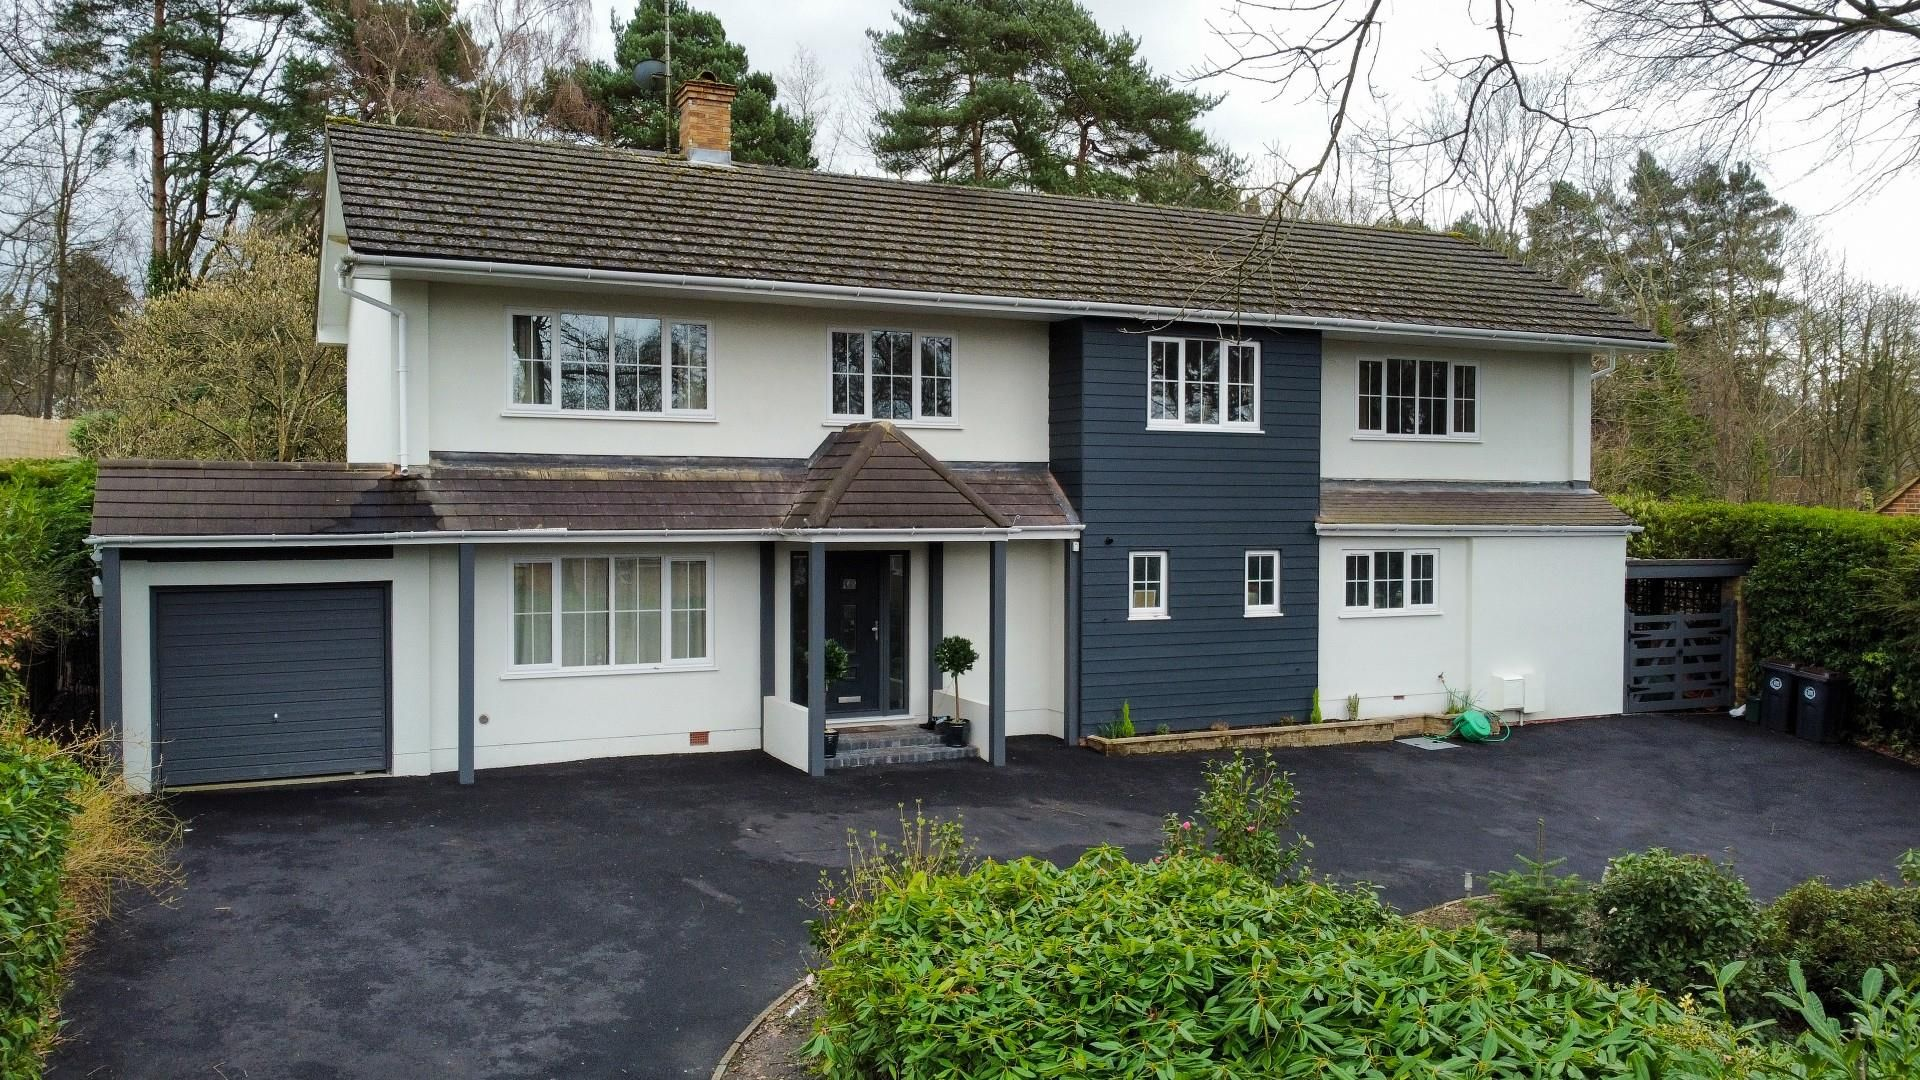 5 bed house for sale - Property Image 1